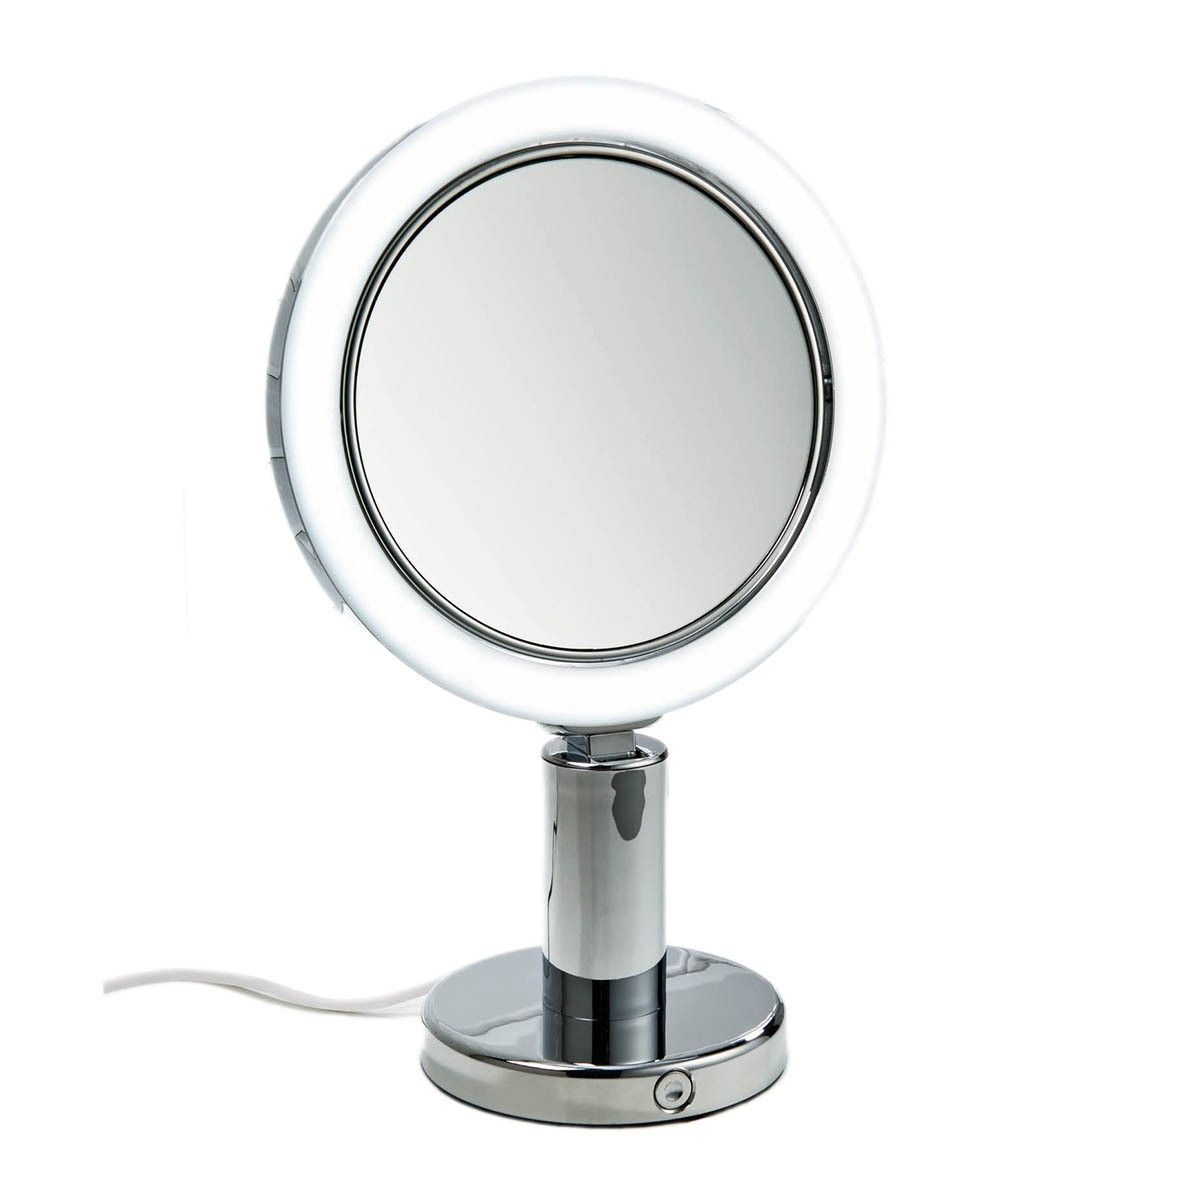 Smile 301 Magnifying Mirror Illuminated 7x From the Smile Collection ...